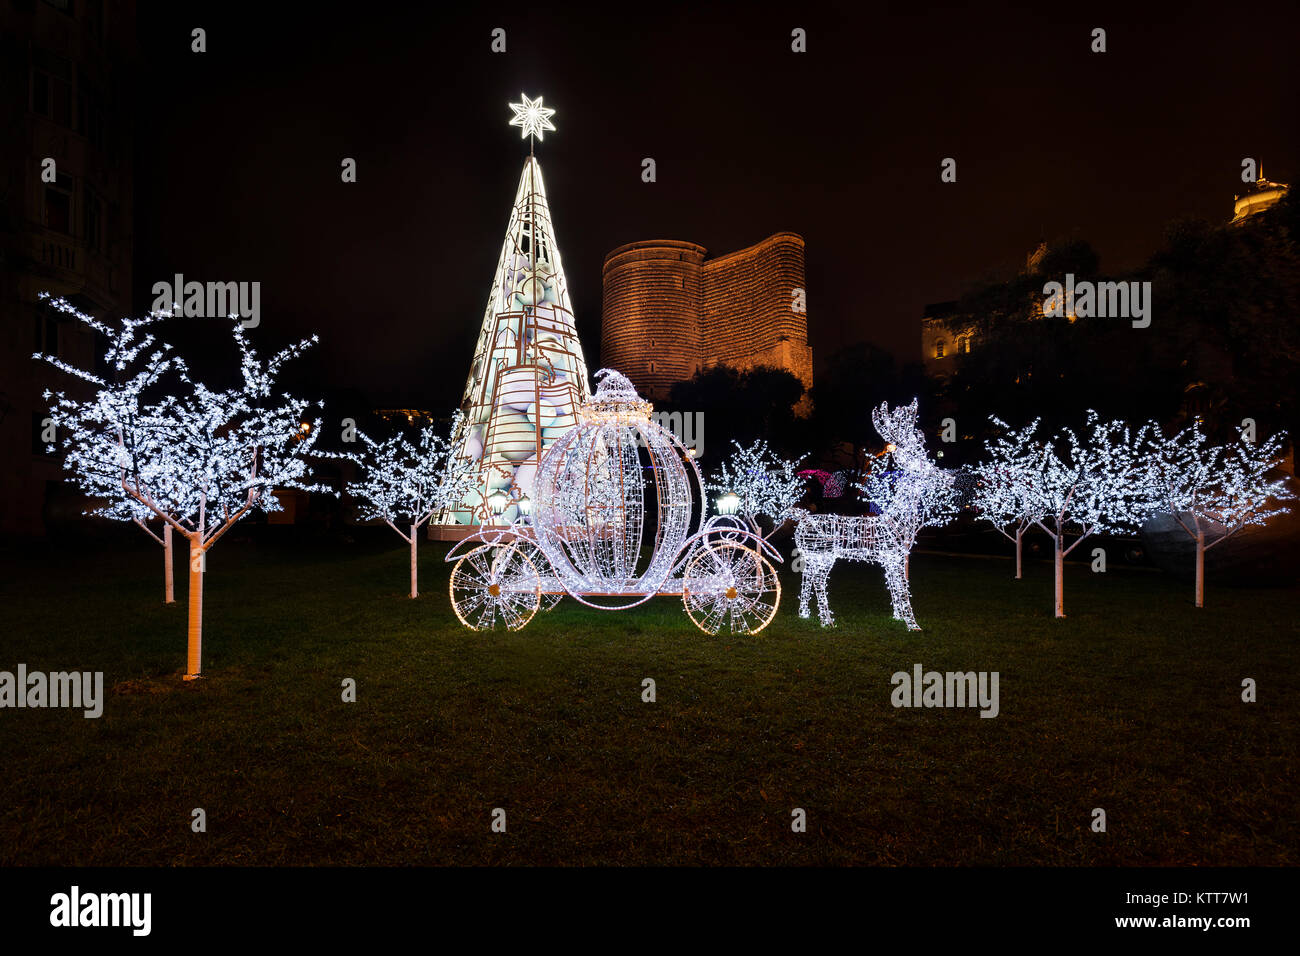 Christmas Light at the Old City in Baku - Stock Image